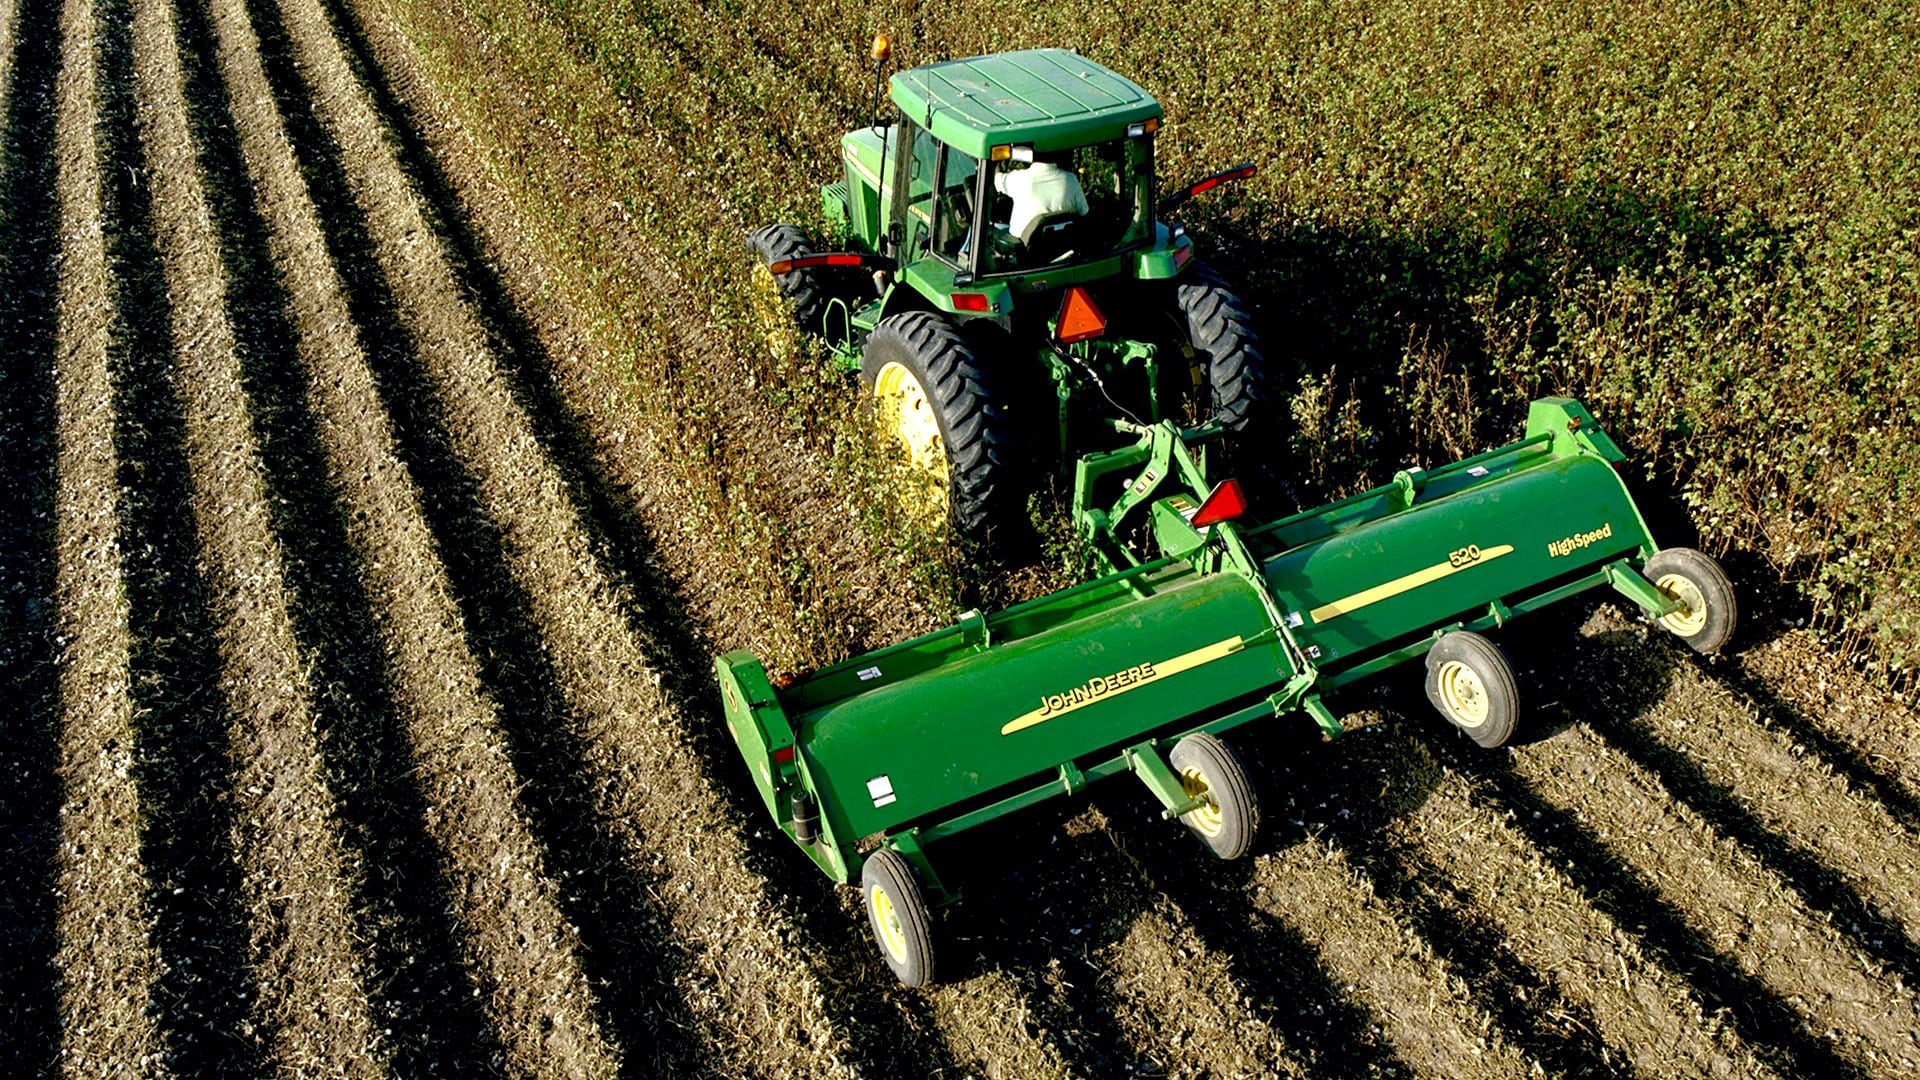 aerial view of flail mower attached to tractor in a field